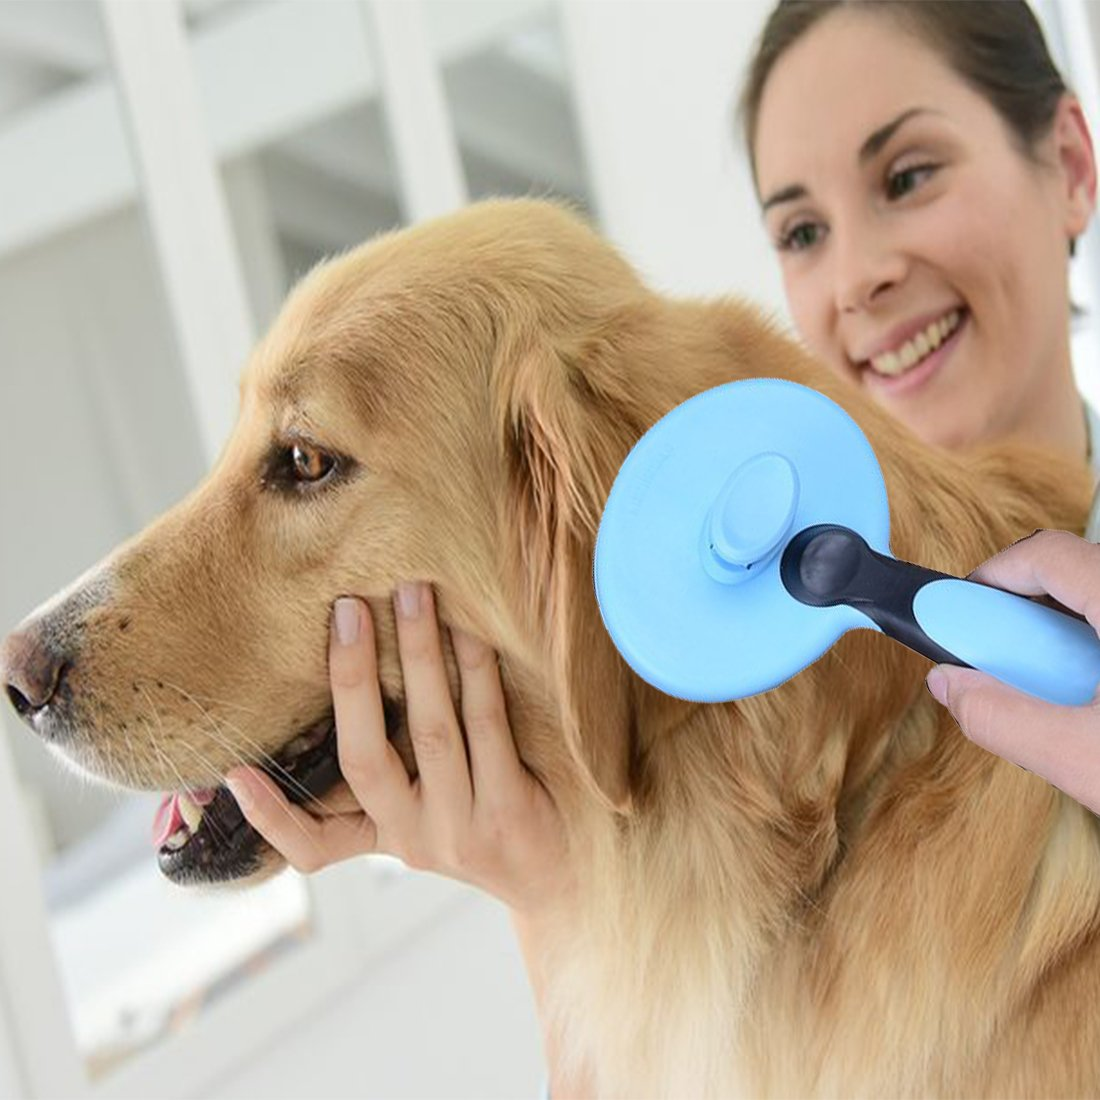 JAchoice Slicker Brush Self Cleaning Pet Grooming Comb Long Hair Pets Brush Ball Type Stainless Steel Comfortable & Safe Pet Hair Removal Brush for All Dogs Cats Rabbits with Long Thick Hair